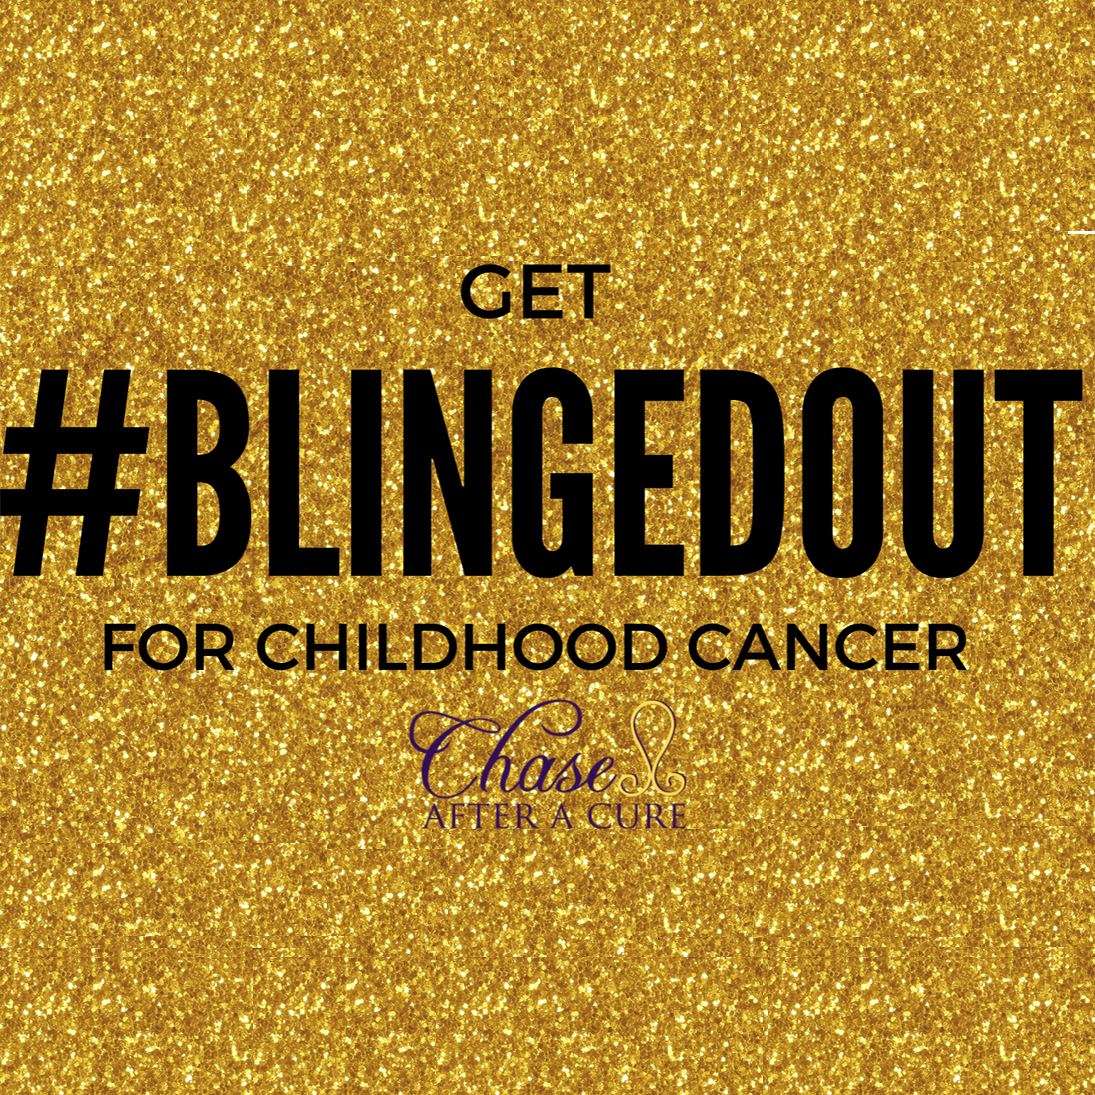 Flashy for a Cause: Raising Awareness for Childhood Cancers